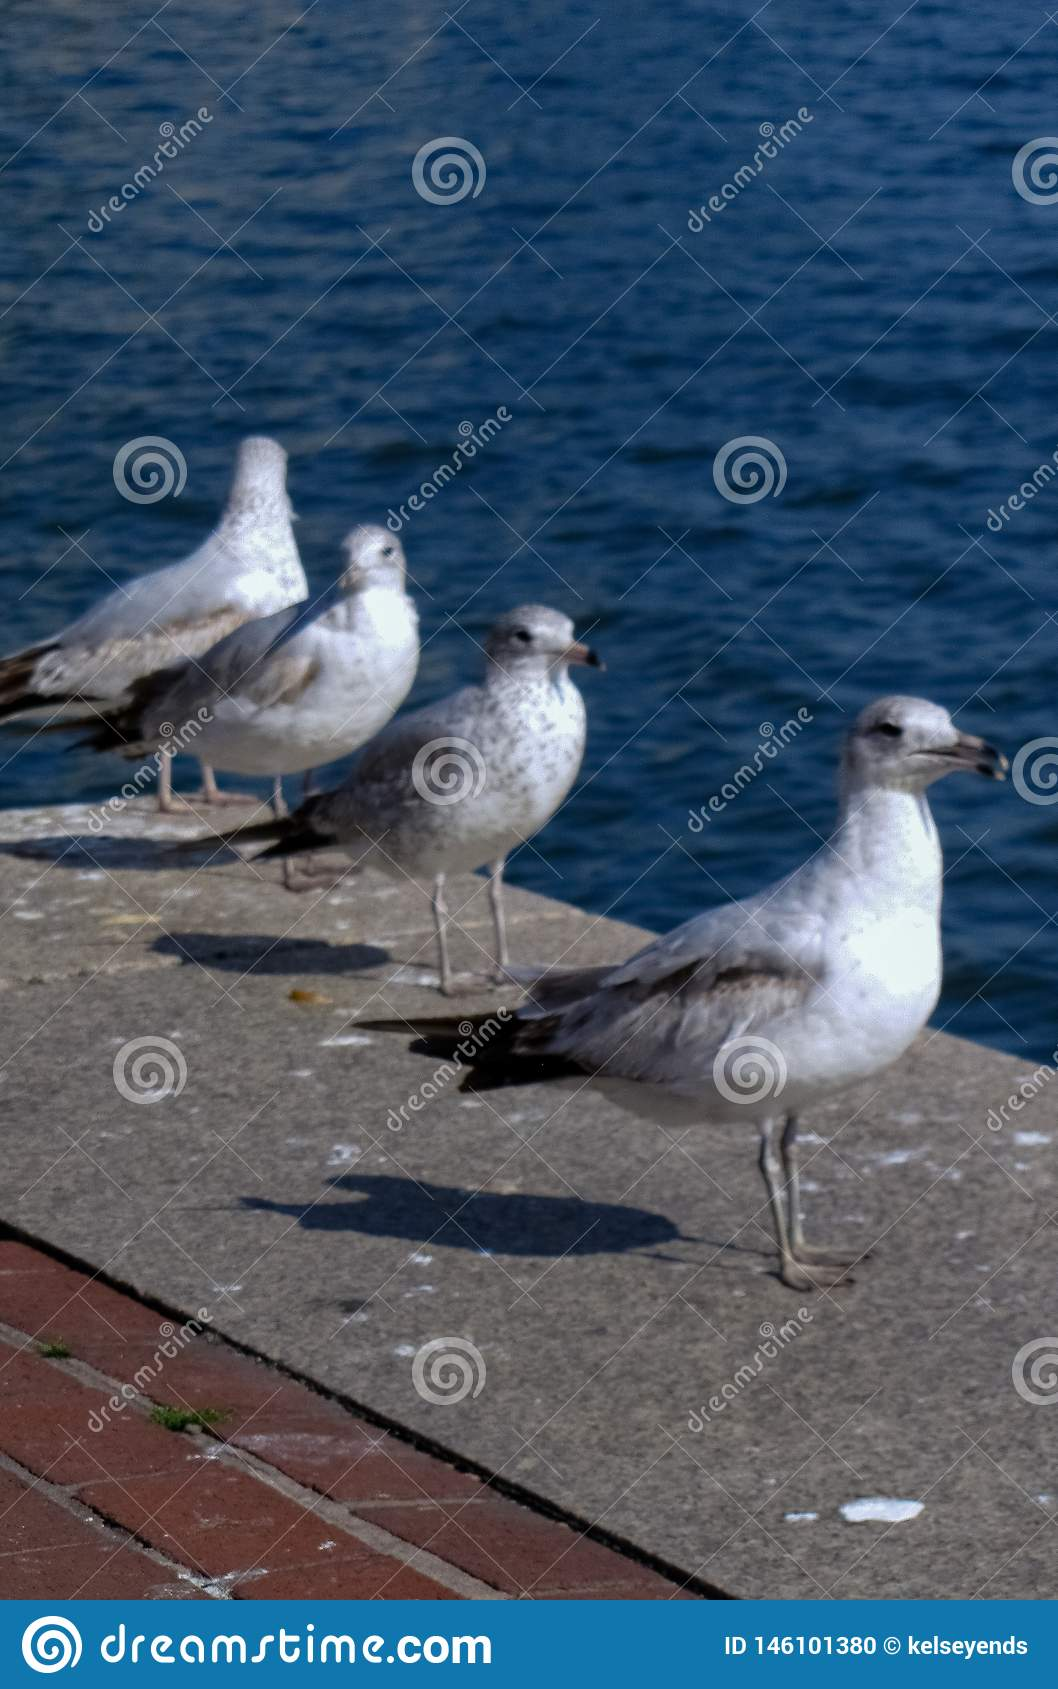 Row of Seagulls Along Pier